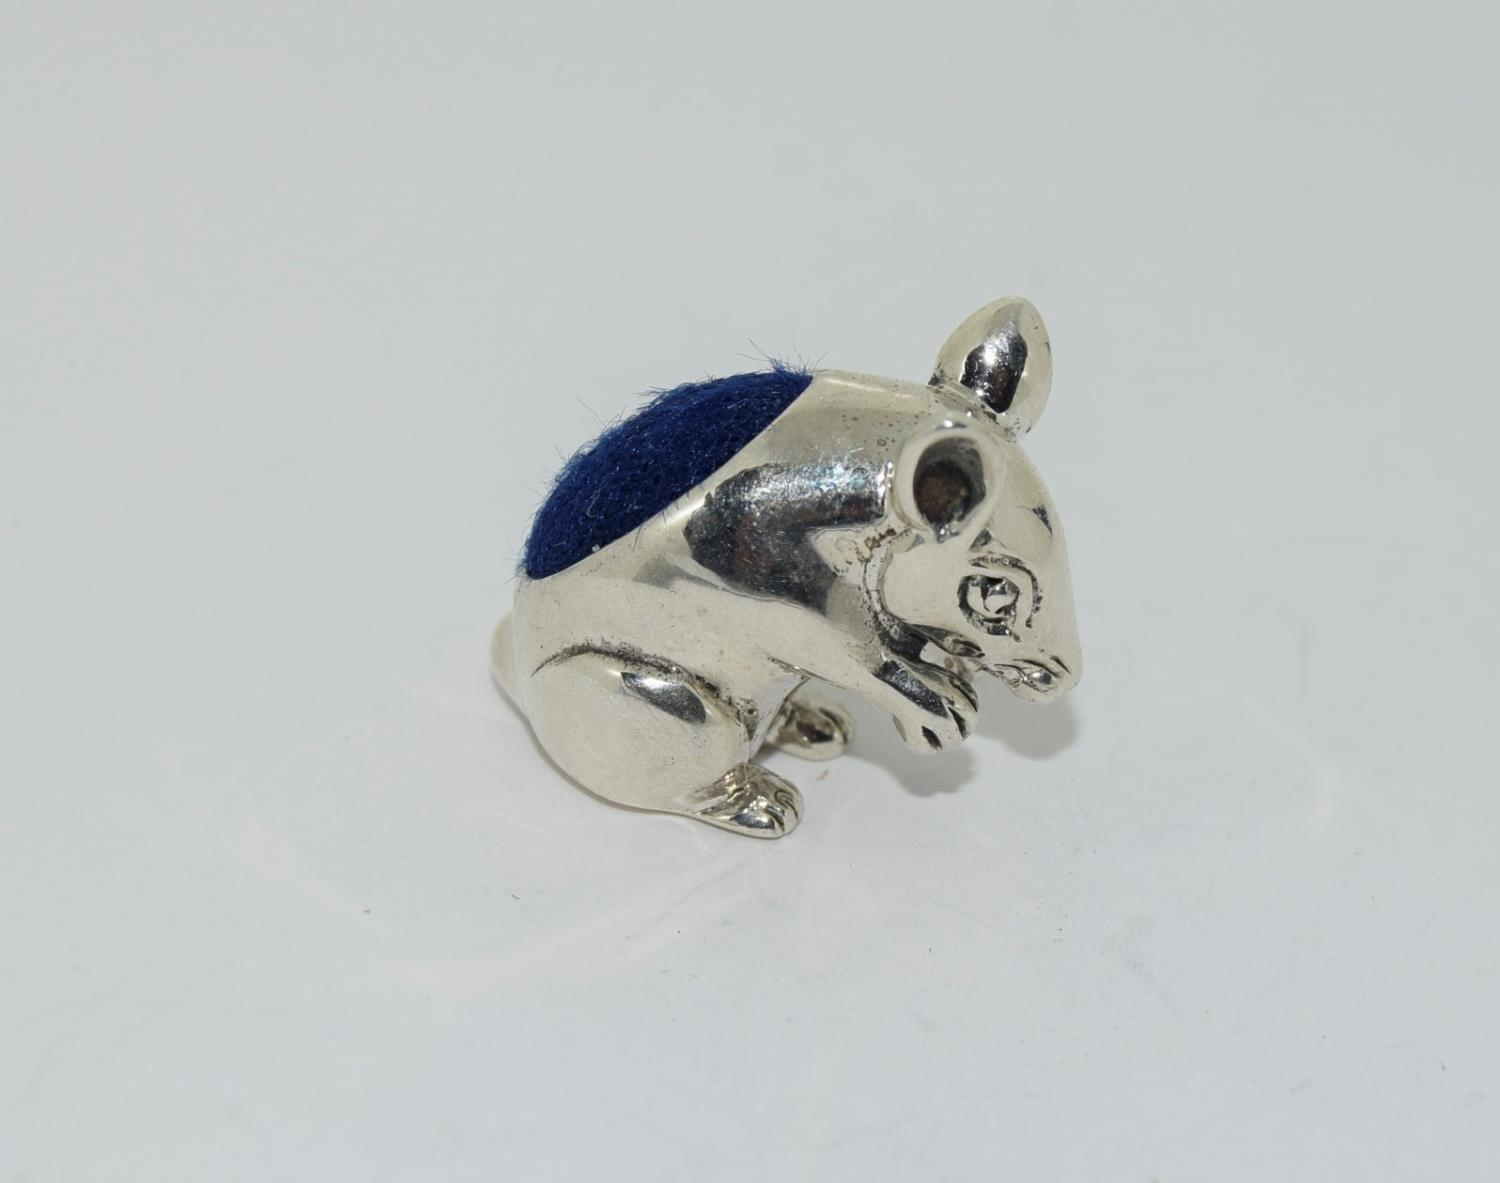 A silver mouse pincushion stamped 925